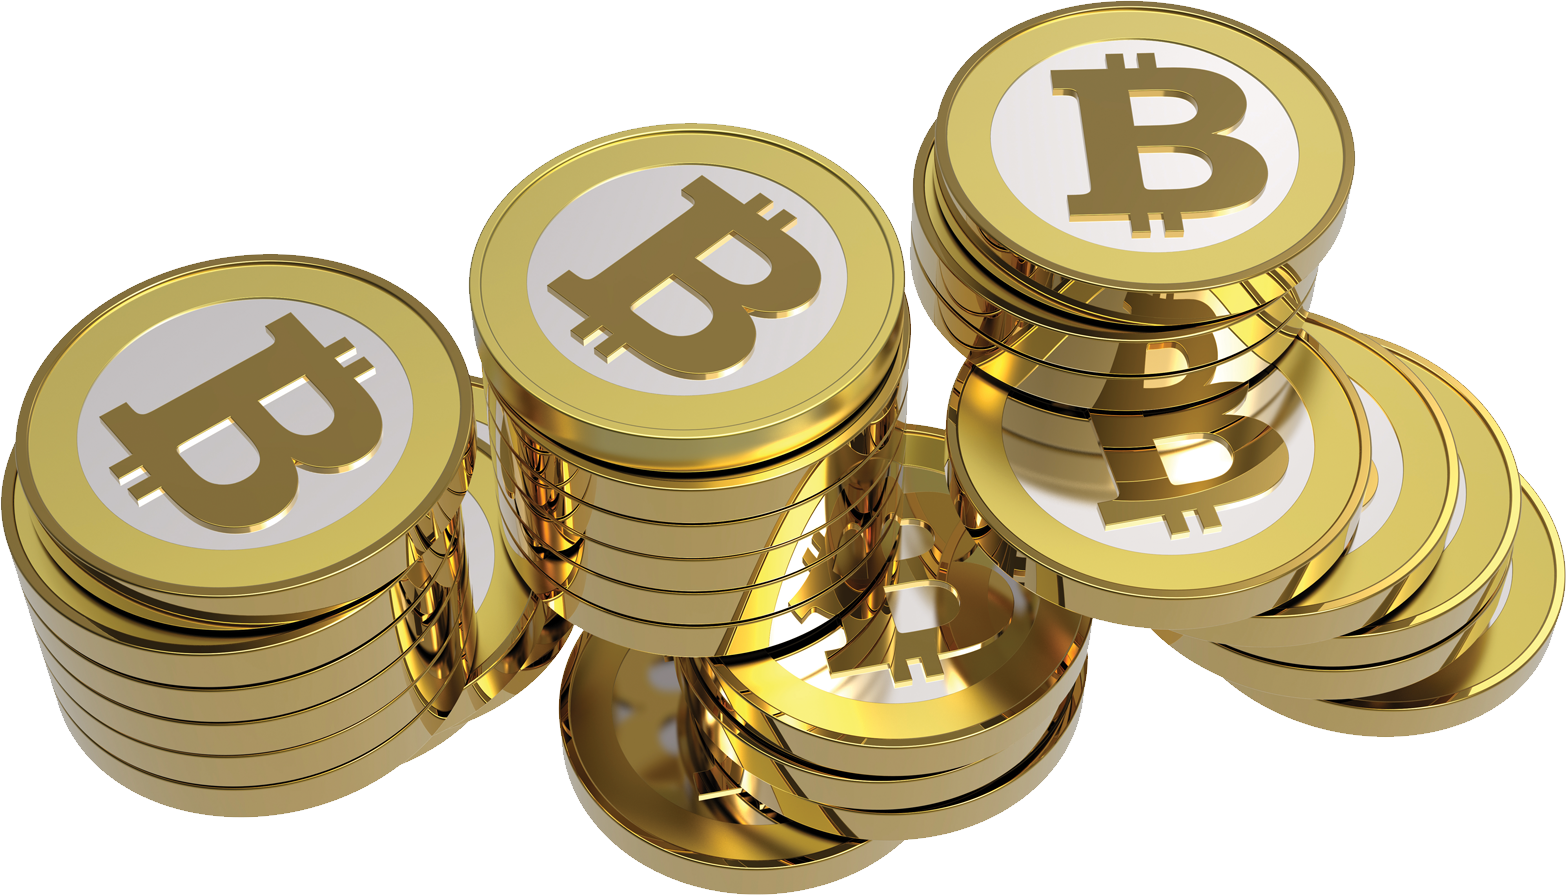 Cryptocurrency Money Dash Bitcoin Cash PNG Free Photo PNG Image